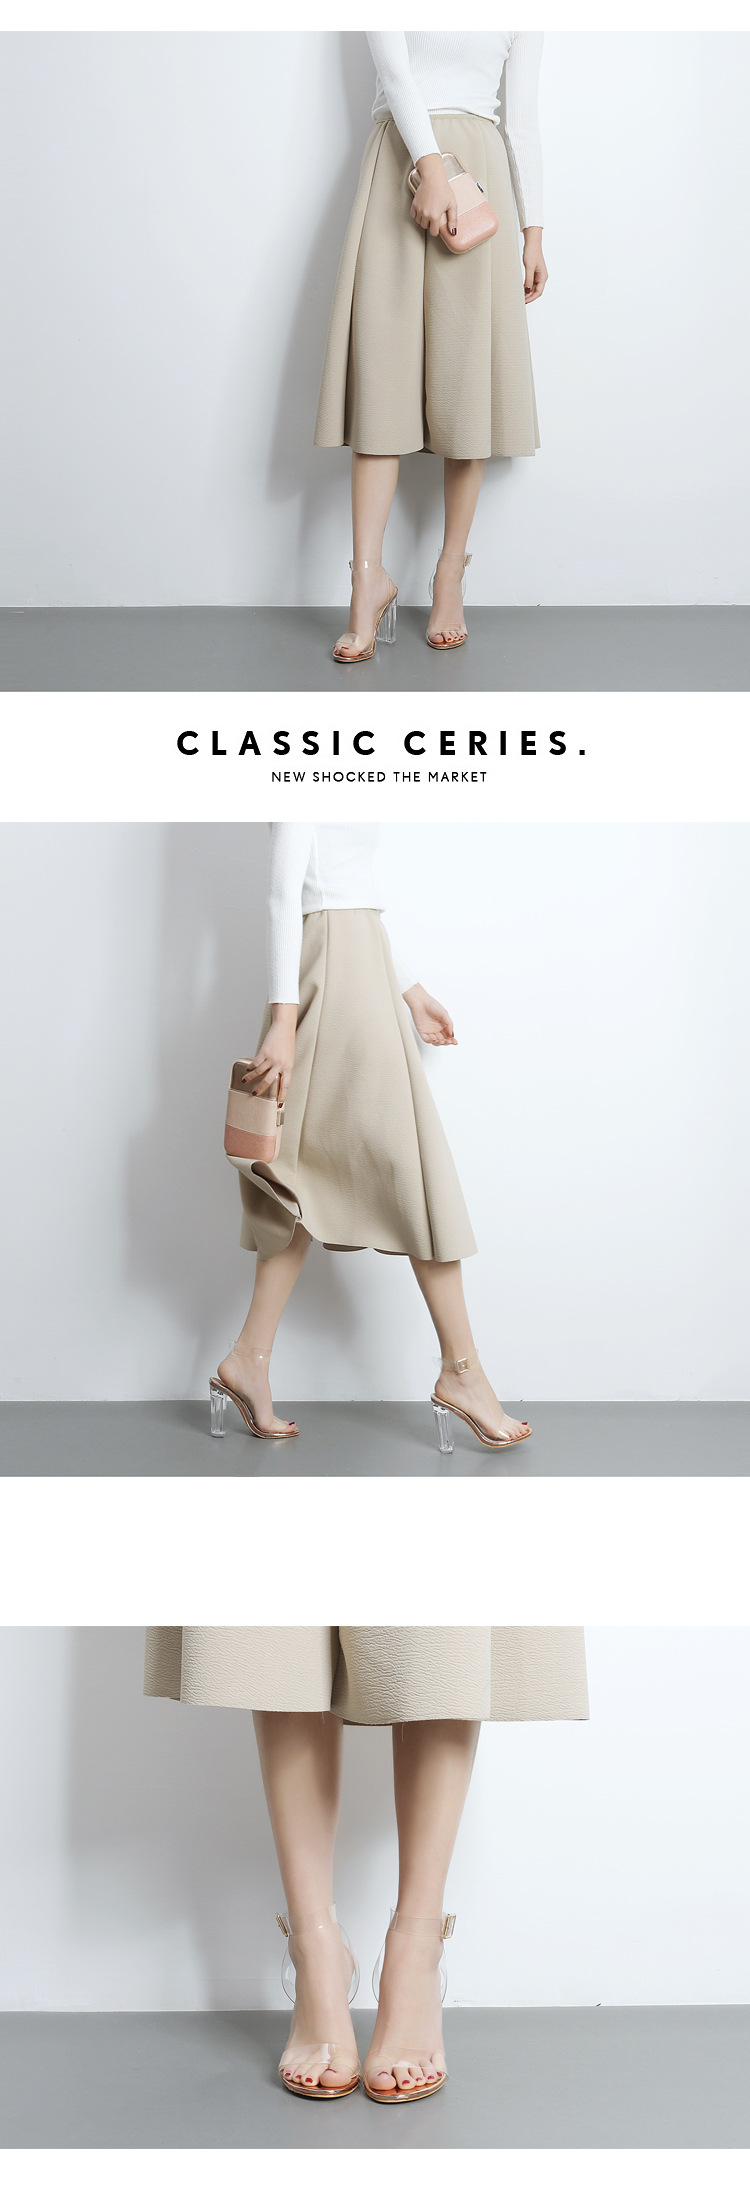 With open toe catwalk imitated crystal shoes transparent thick with sandals women s shoes SO190424119069